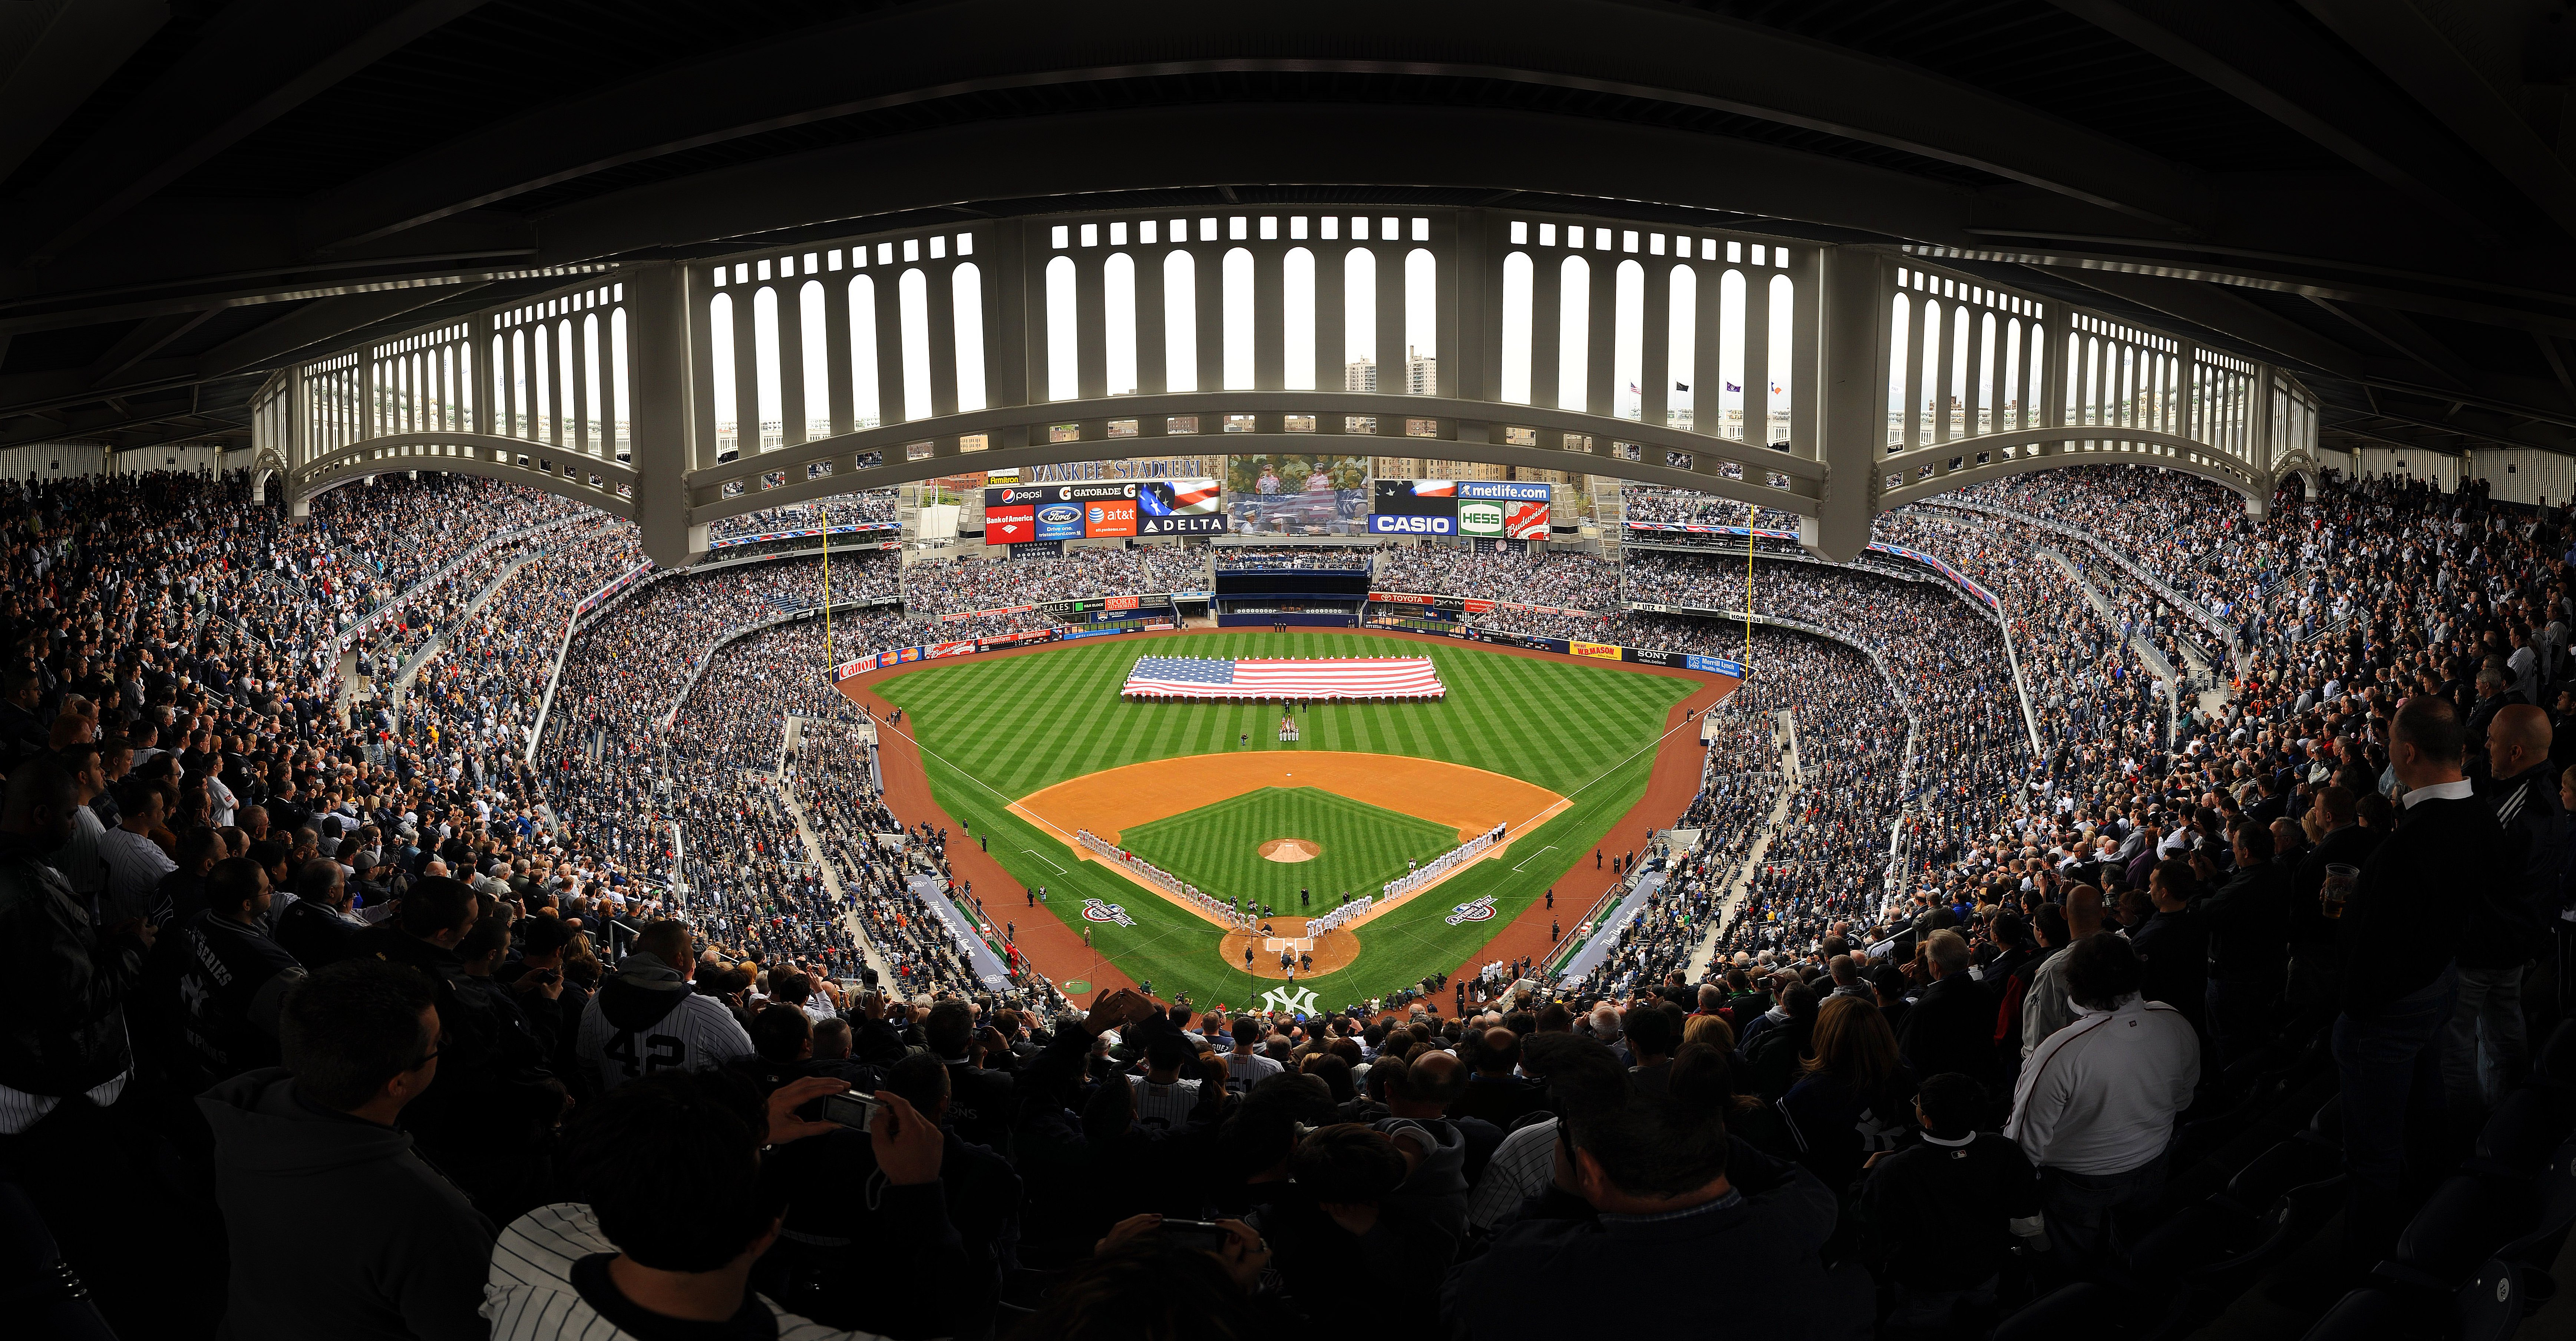 NEW YORK - APRIL 13: (***EDITORS NOTE*** THIS PANORAMIC COMPOSITE IMAGE WAS CREATED USING PHOTO STITCHING SOFTWARE) The New York Yankees and the Los Angeles Angels of Anaheim stand at attention during the National Anthem as a giant American flag is displa